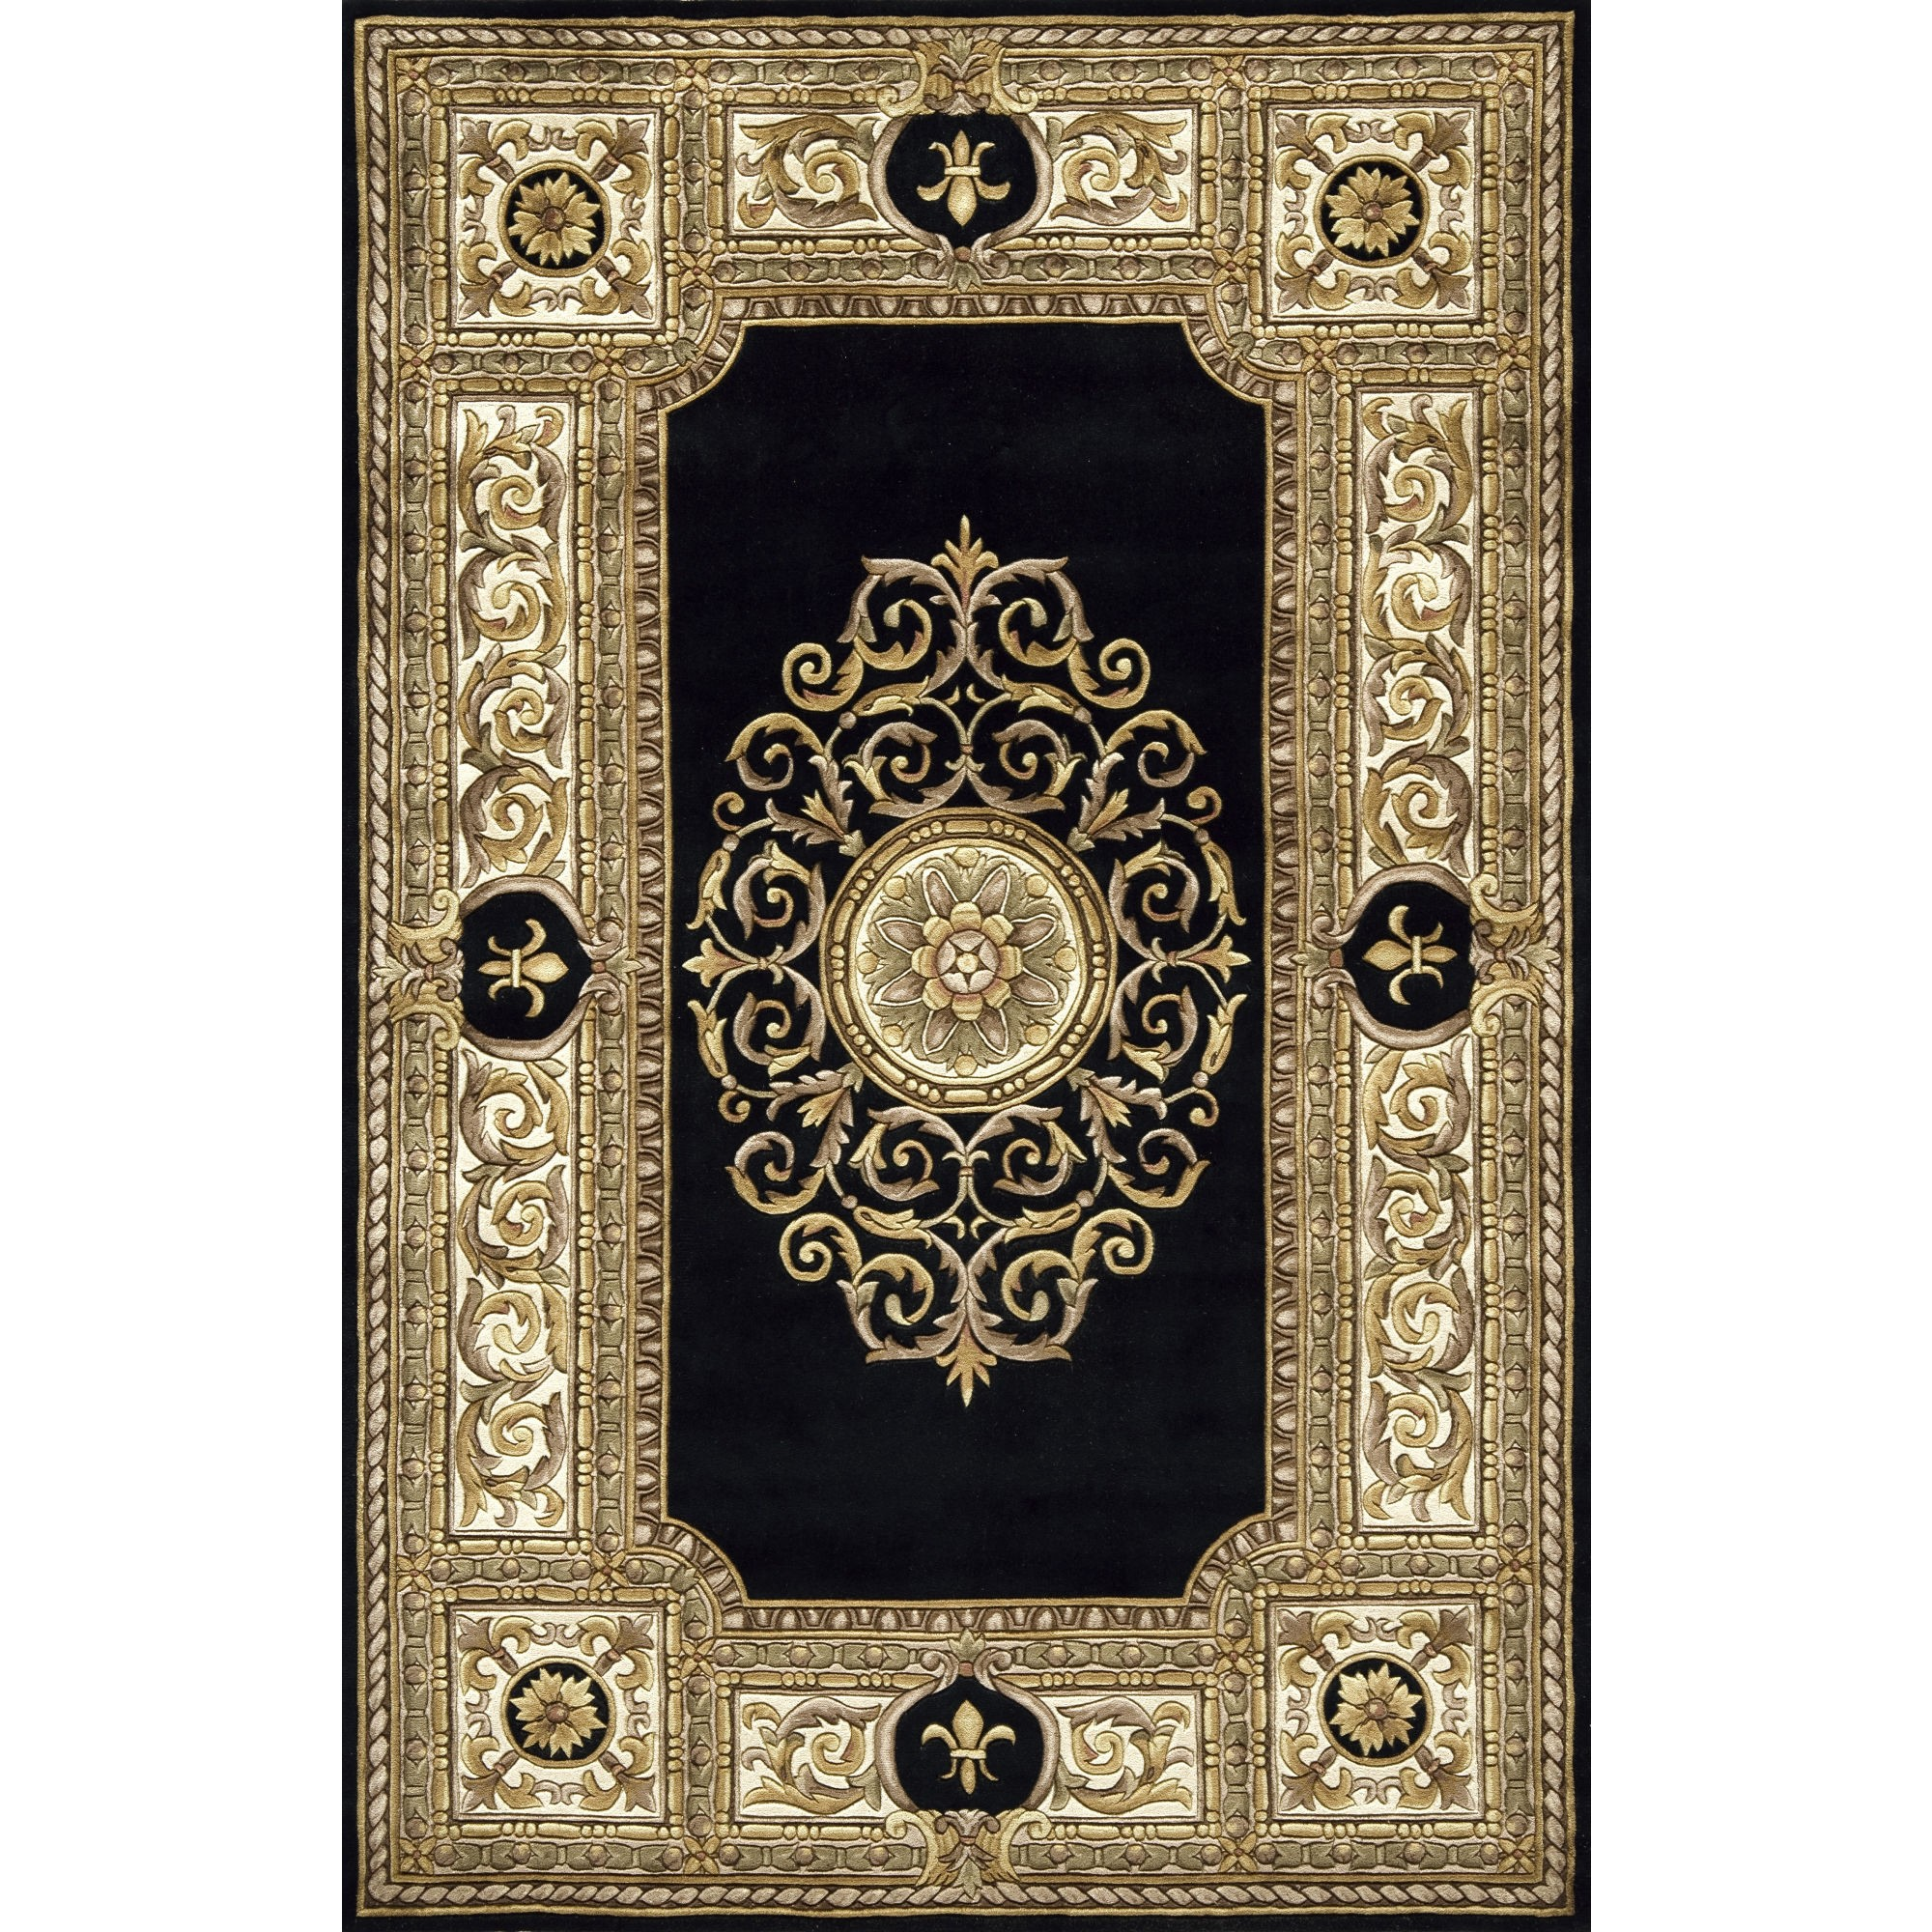 elegant Maison Black Oriental Rug MA 08BLK by momeni rugs for floor decor ideas